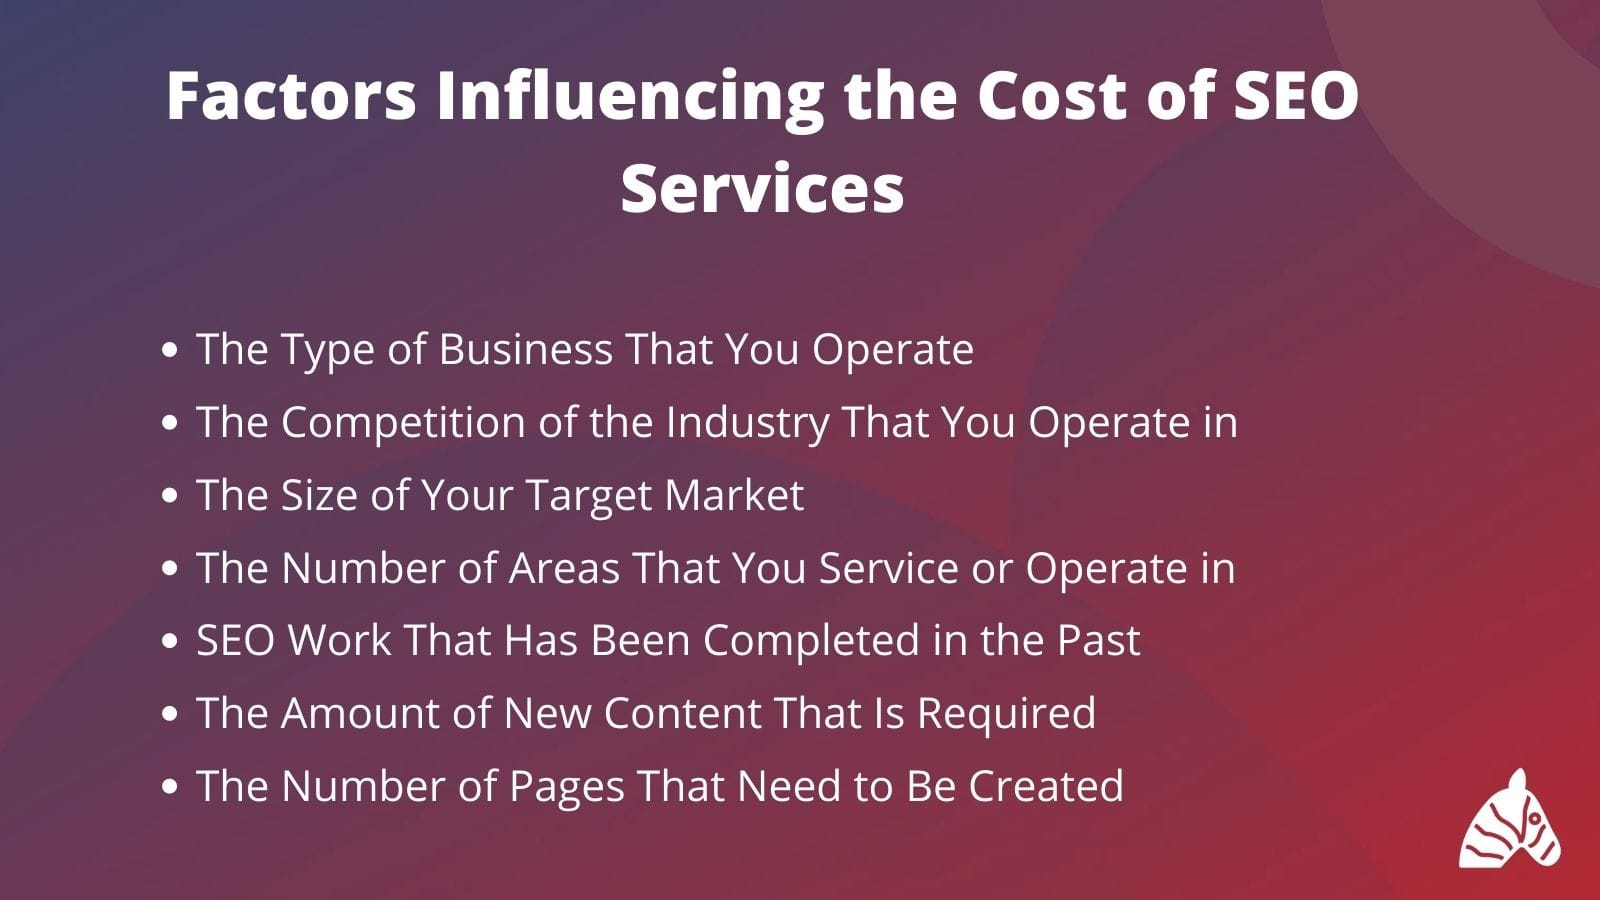 factors influencing the cost of SEO services